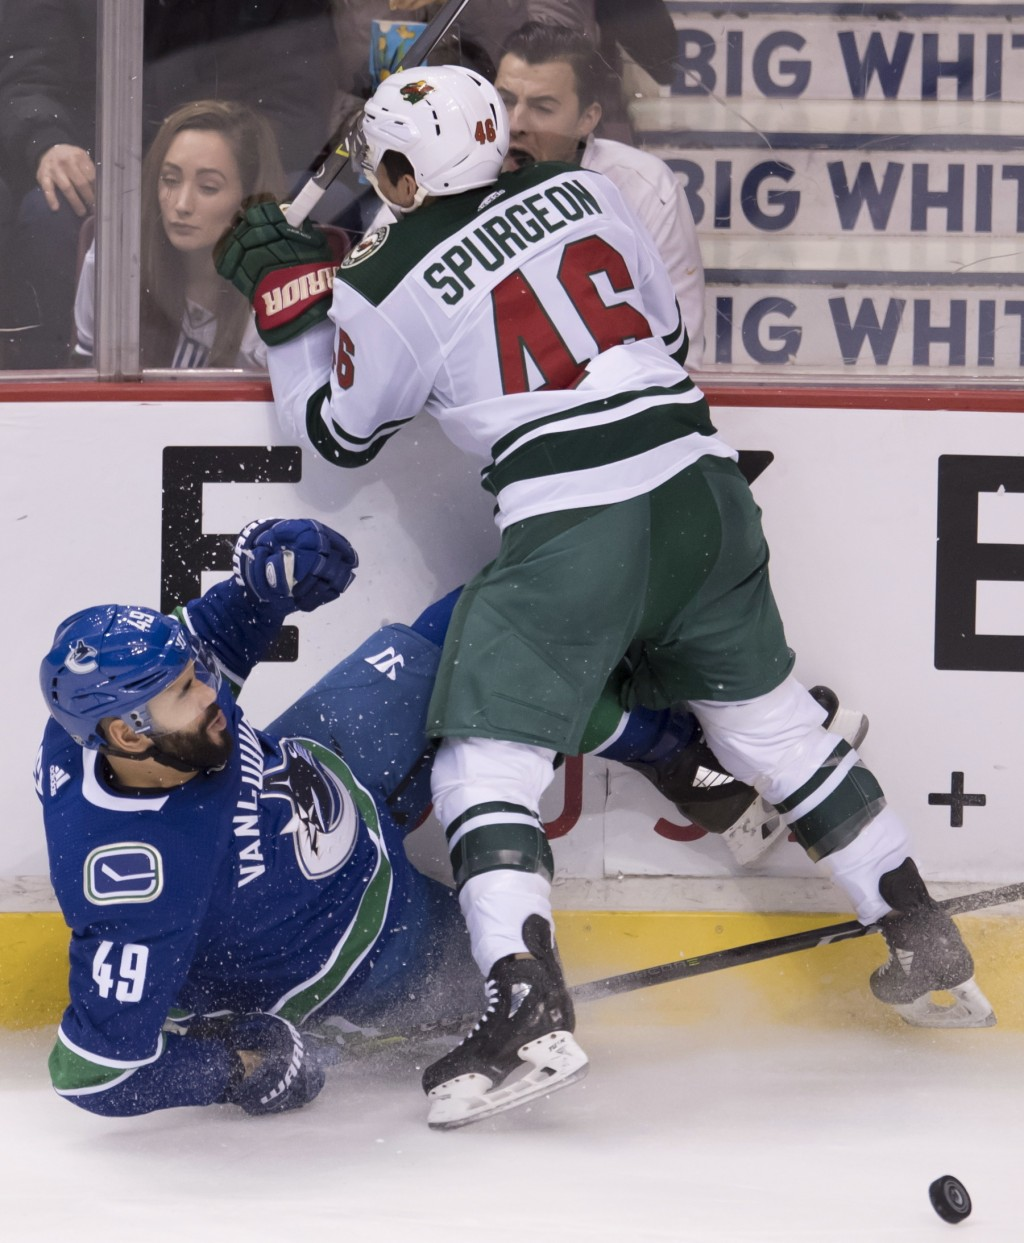 Minnesota Wild defenseman Jared Spurgeon (46) goes into the boards with Vancouver Canucks right wing Darren Archibald (49) during the second period of